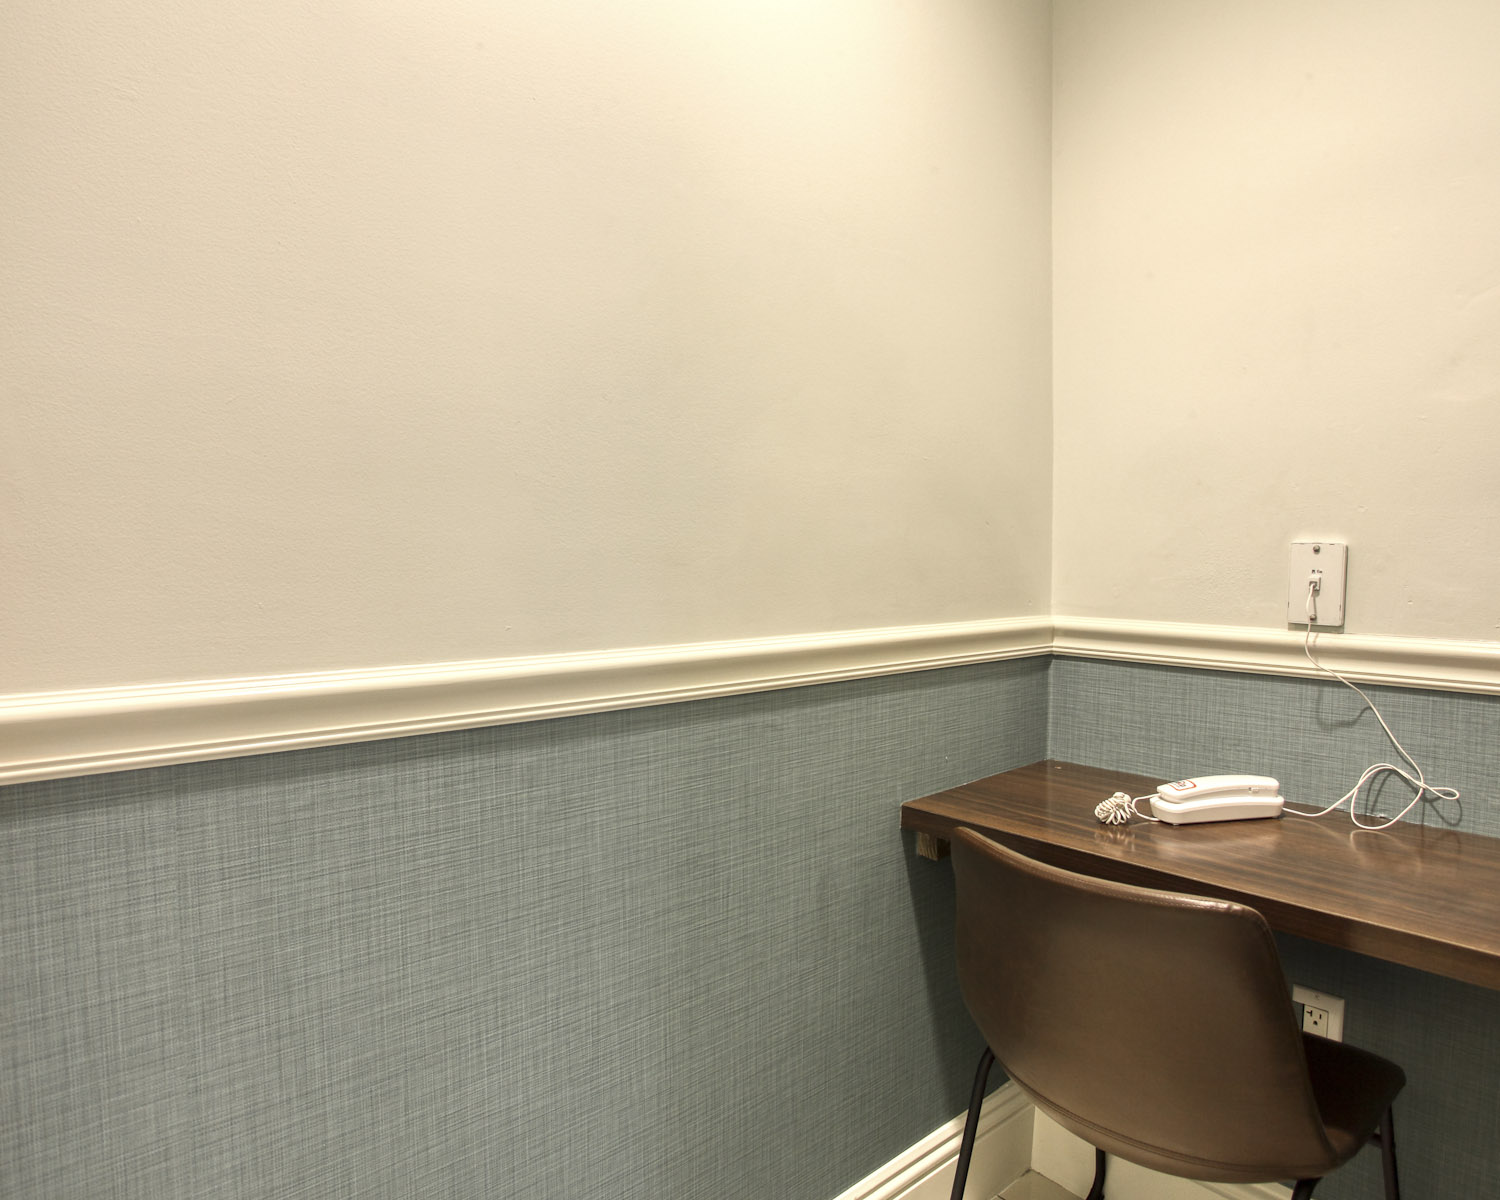 Fort Lauderdale detox center image 37 private space for phone calls away from the common spaces